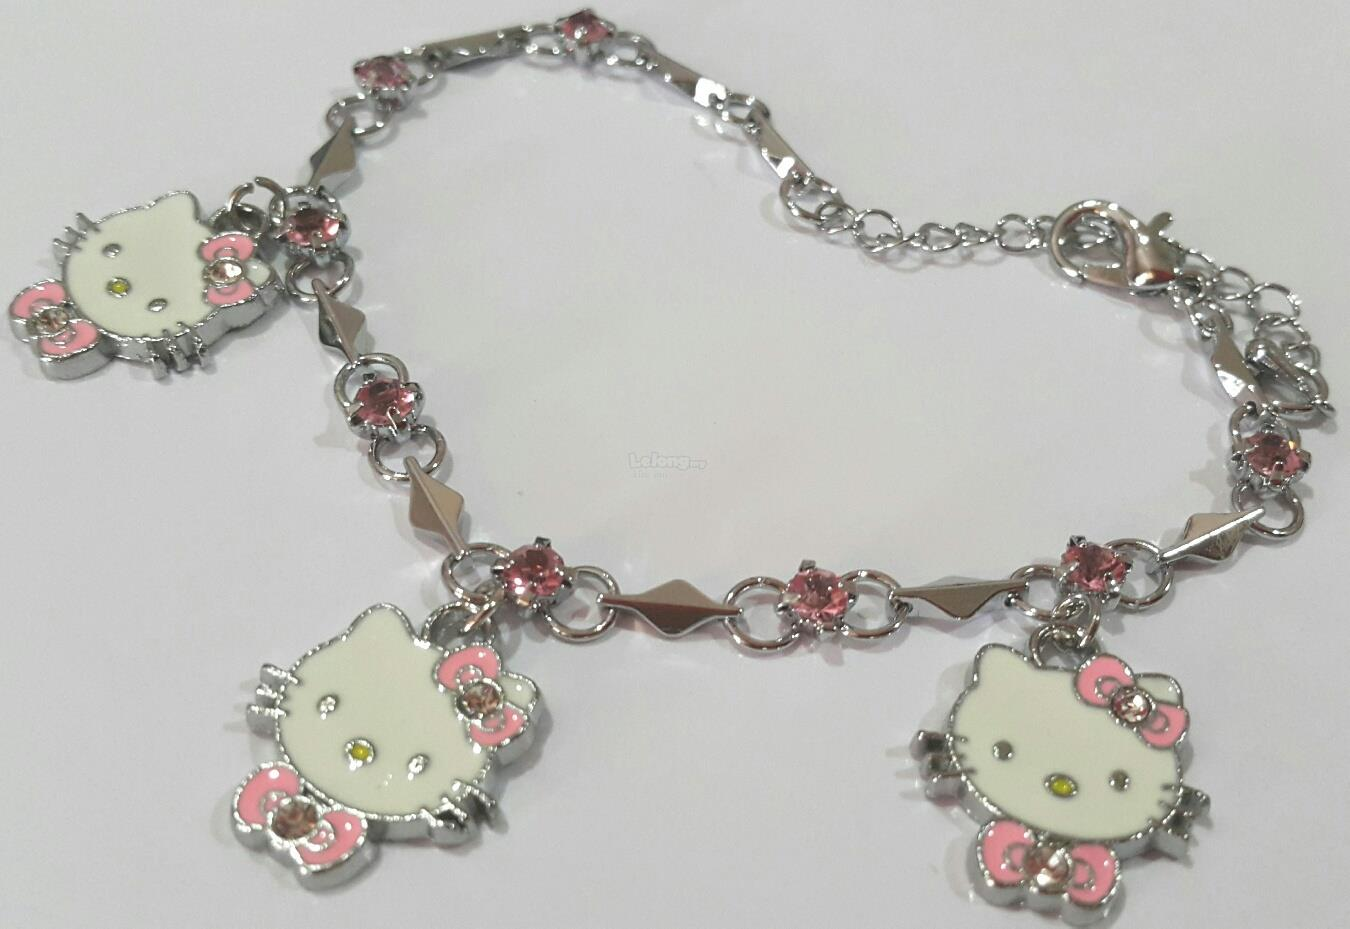 f6d41c8fb82c4 Girl's Bracelet - Hello Kitty Designs 4